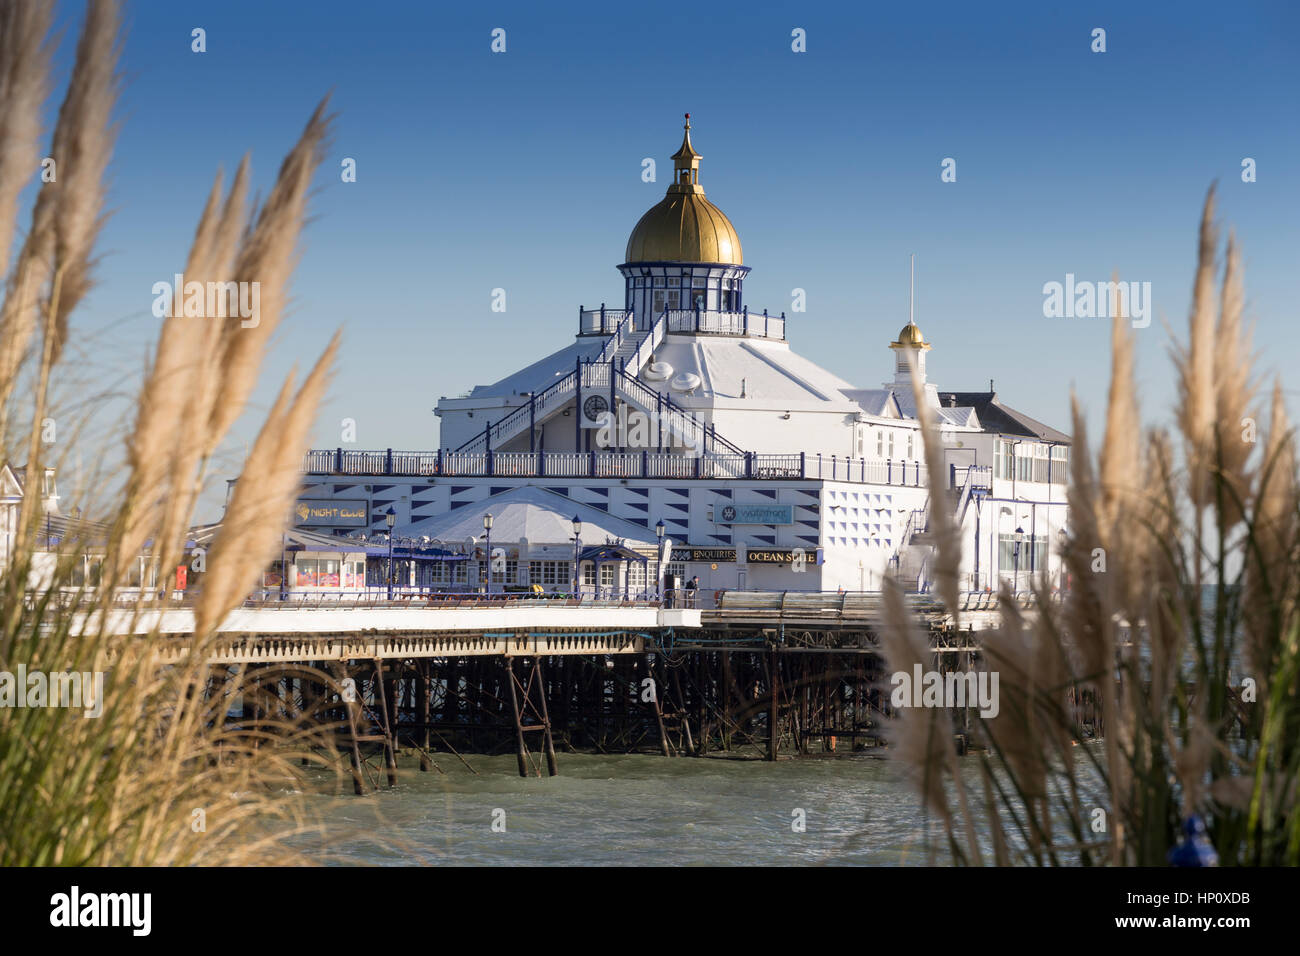 Dome Seaside Stock Photos & Dome Seaside Stock Images - Alamy